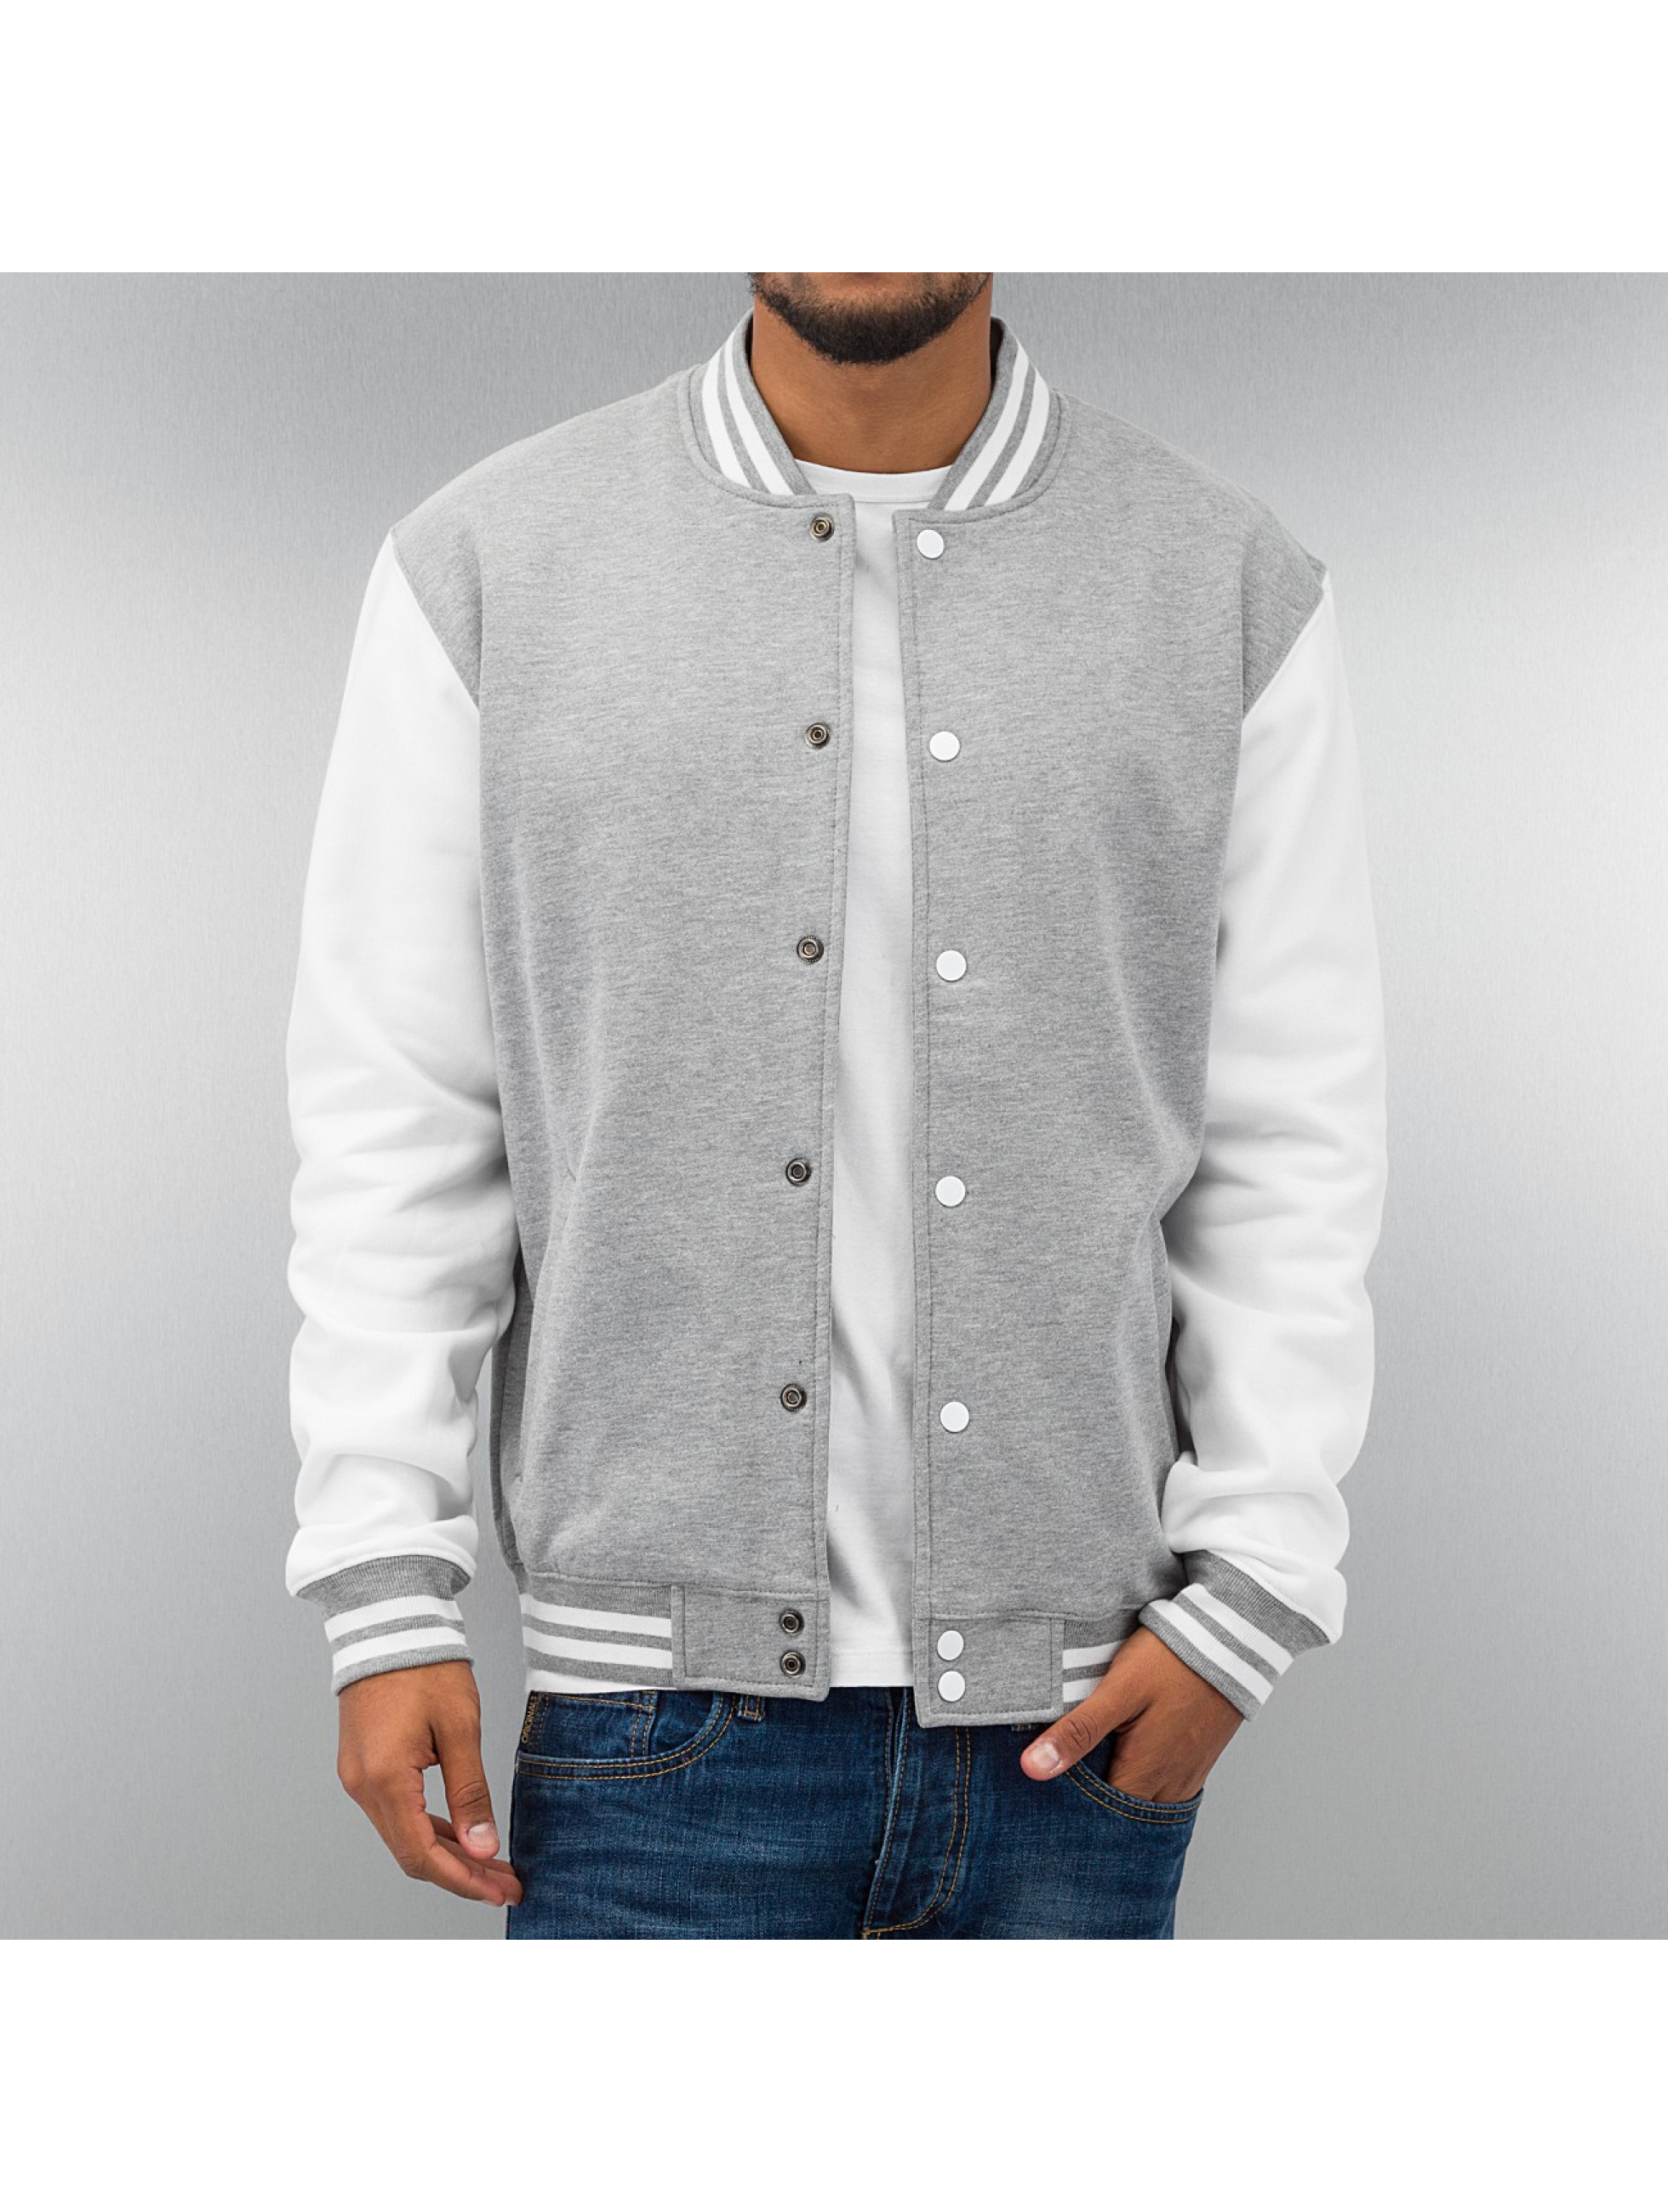 Urban Classics Университетская куртка 2-Tone College Sweatjacket серый